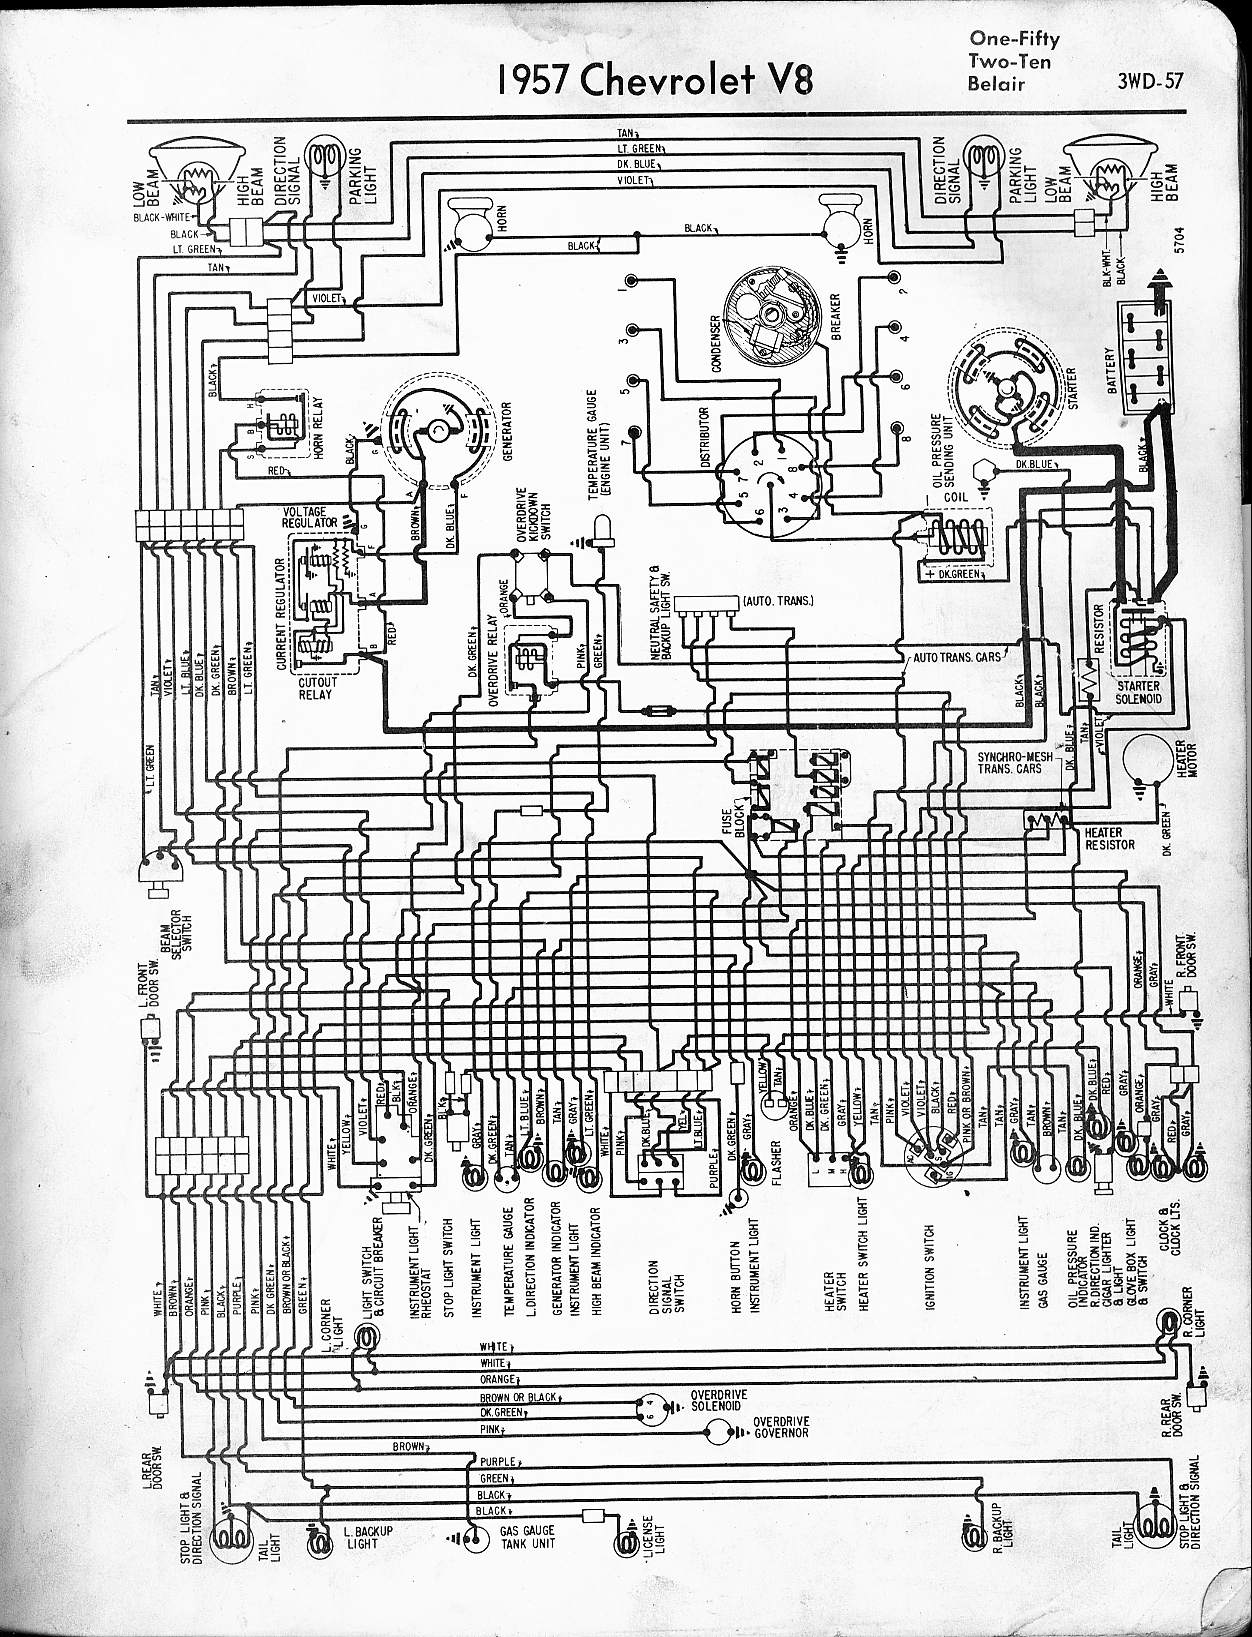 MWireChev57_3WD 057 neutral safety switch, 57 powerglide trifive com, 1955 chevy 1956 chevy ignition switch diagram at soozxer.org